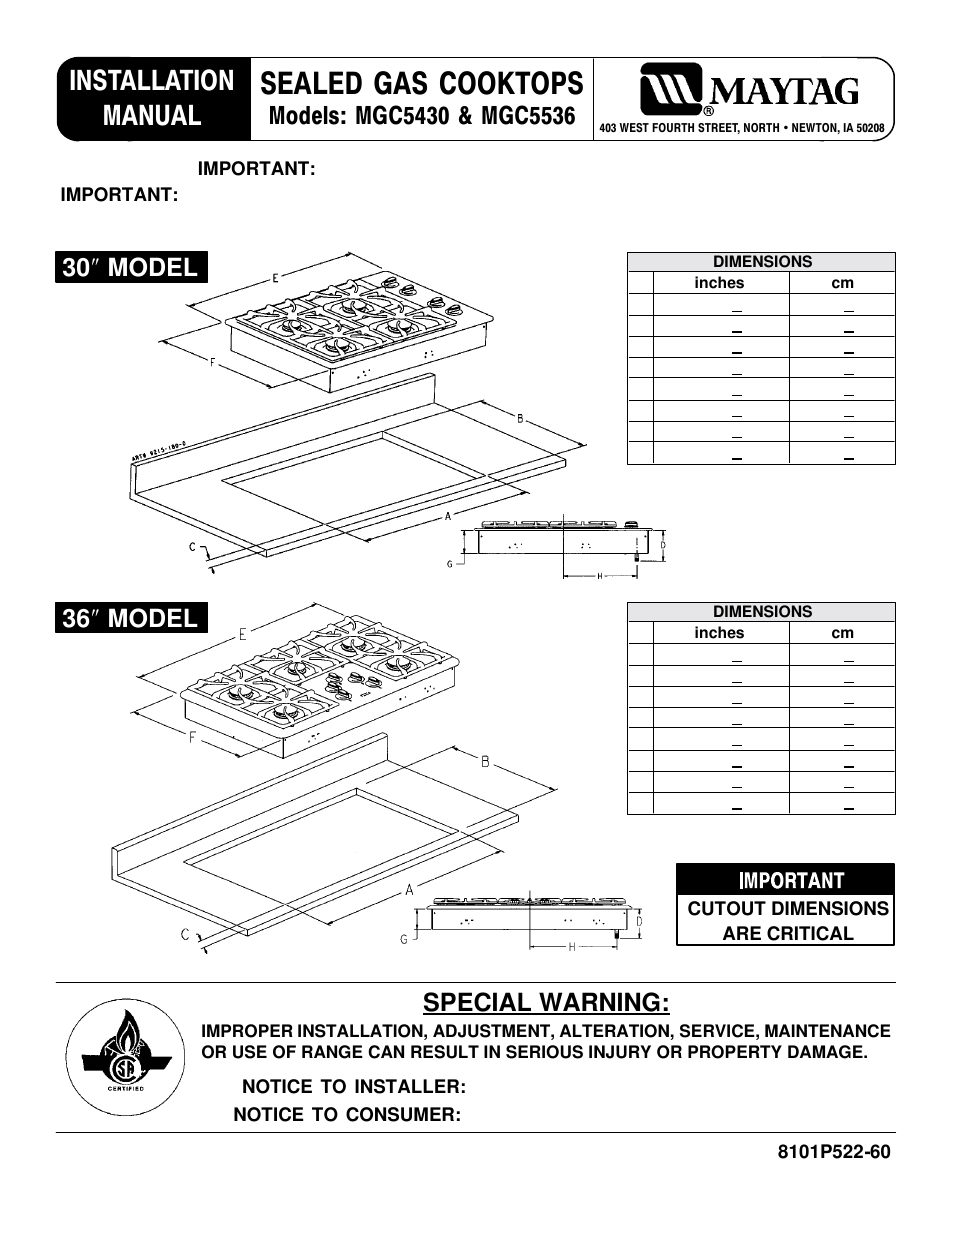 Maytag Mgc5536 User Manual 36 Pages Also For Mgc5430bdb